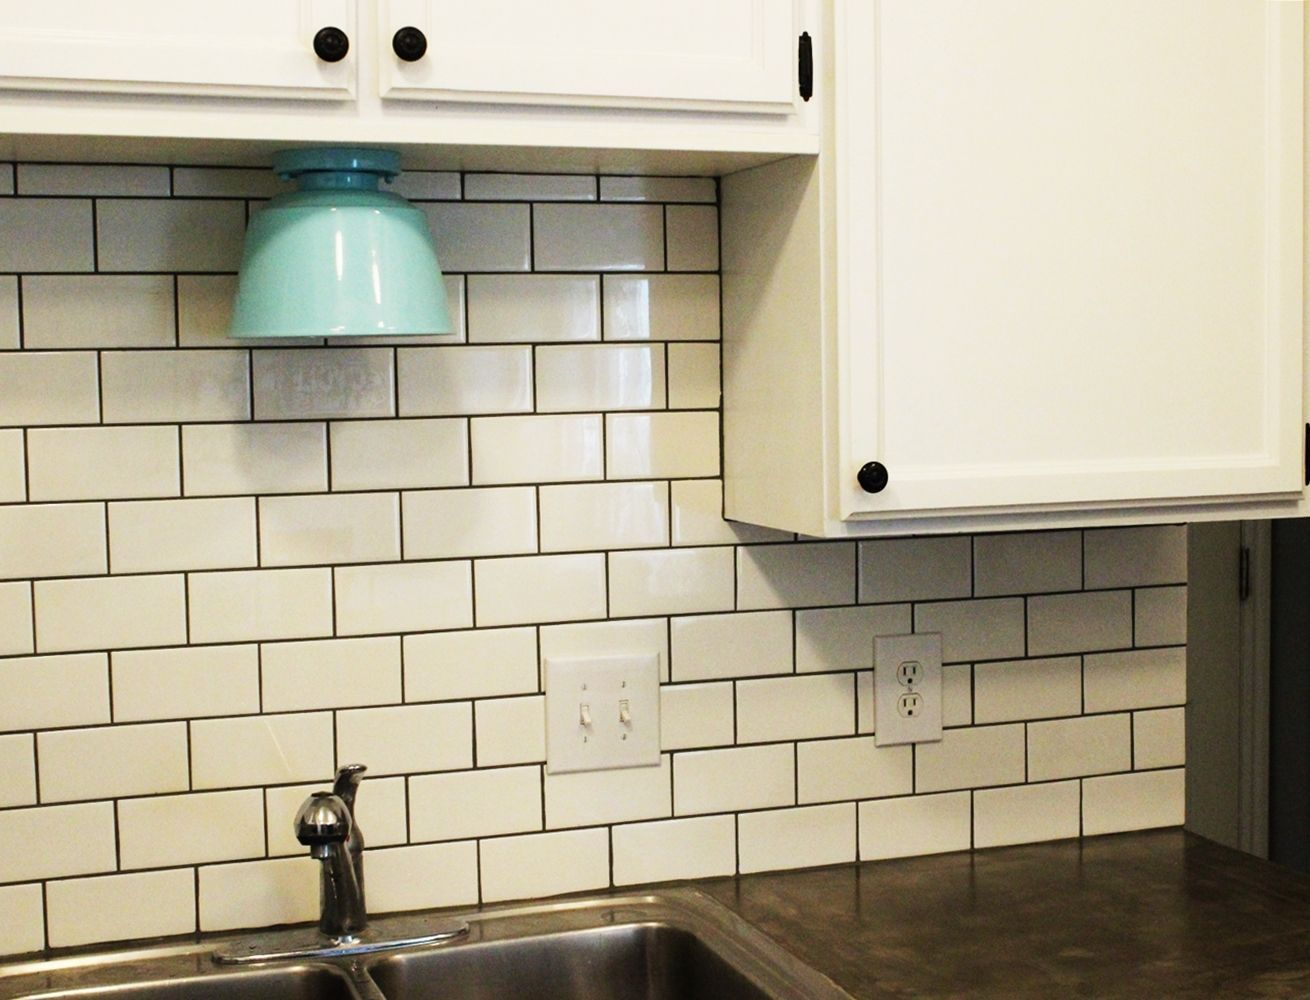 Kitchen Backsplash Lighting diy kitchen lighting upgrade: led under-cabinet lights & above-the